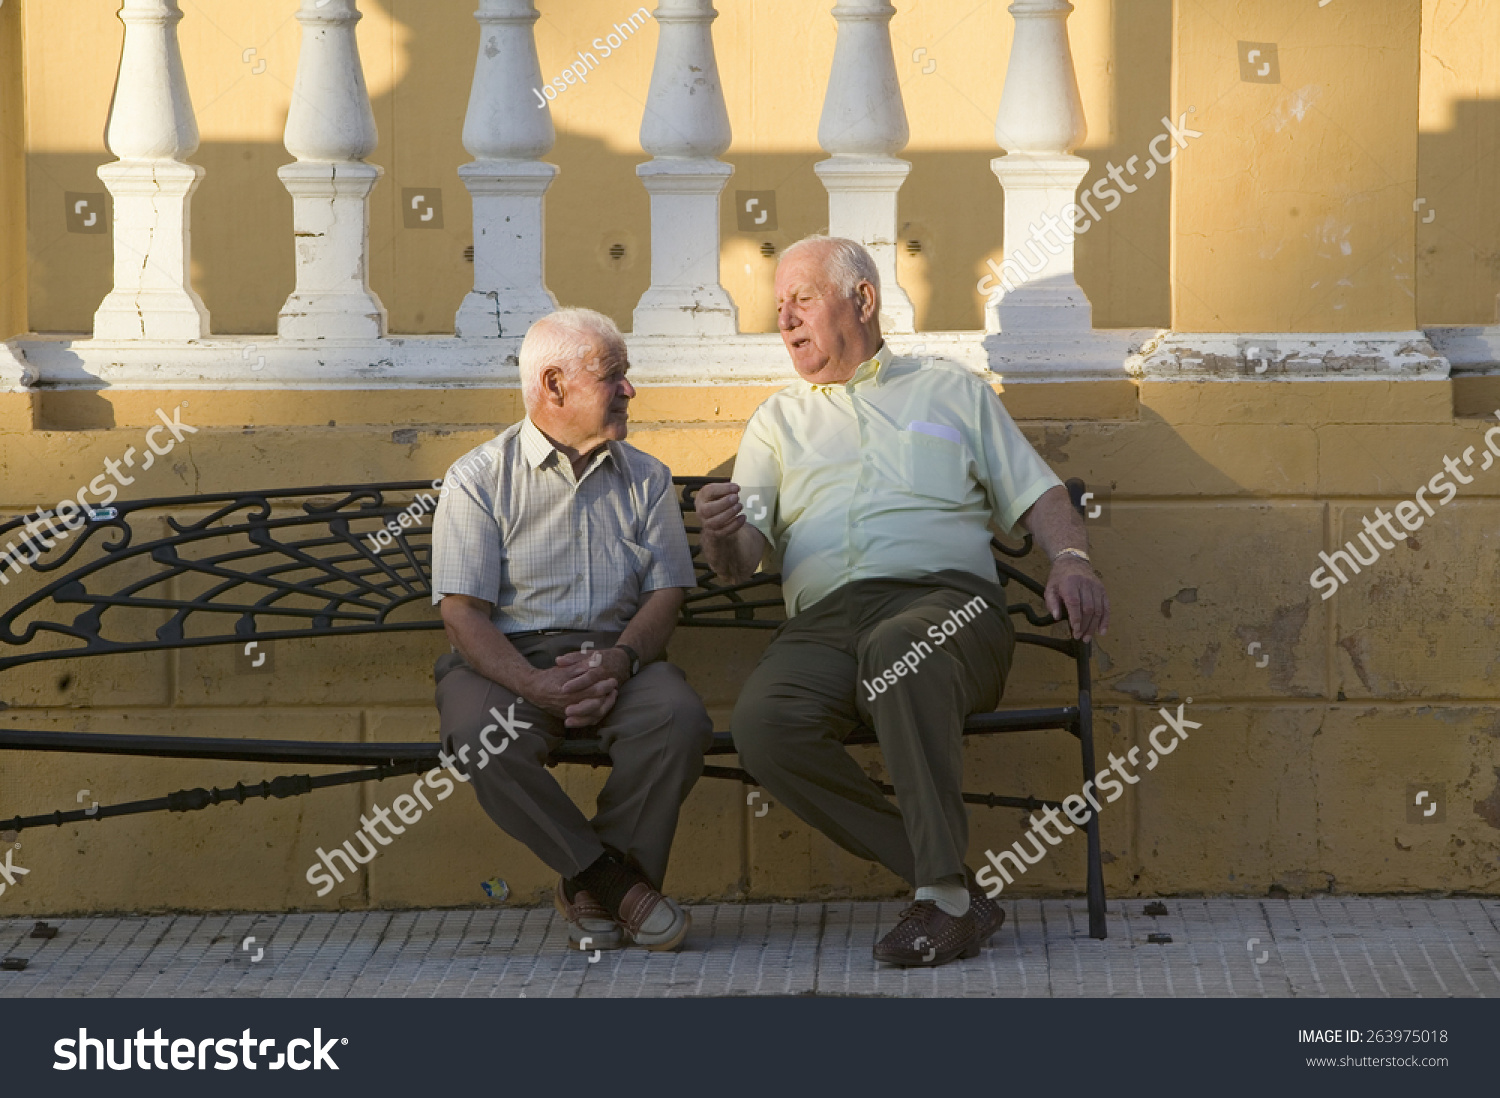 Two Older Men Talk On Bench Stock Photo Edit Now 263975018